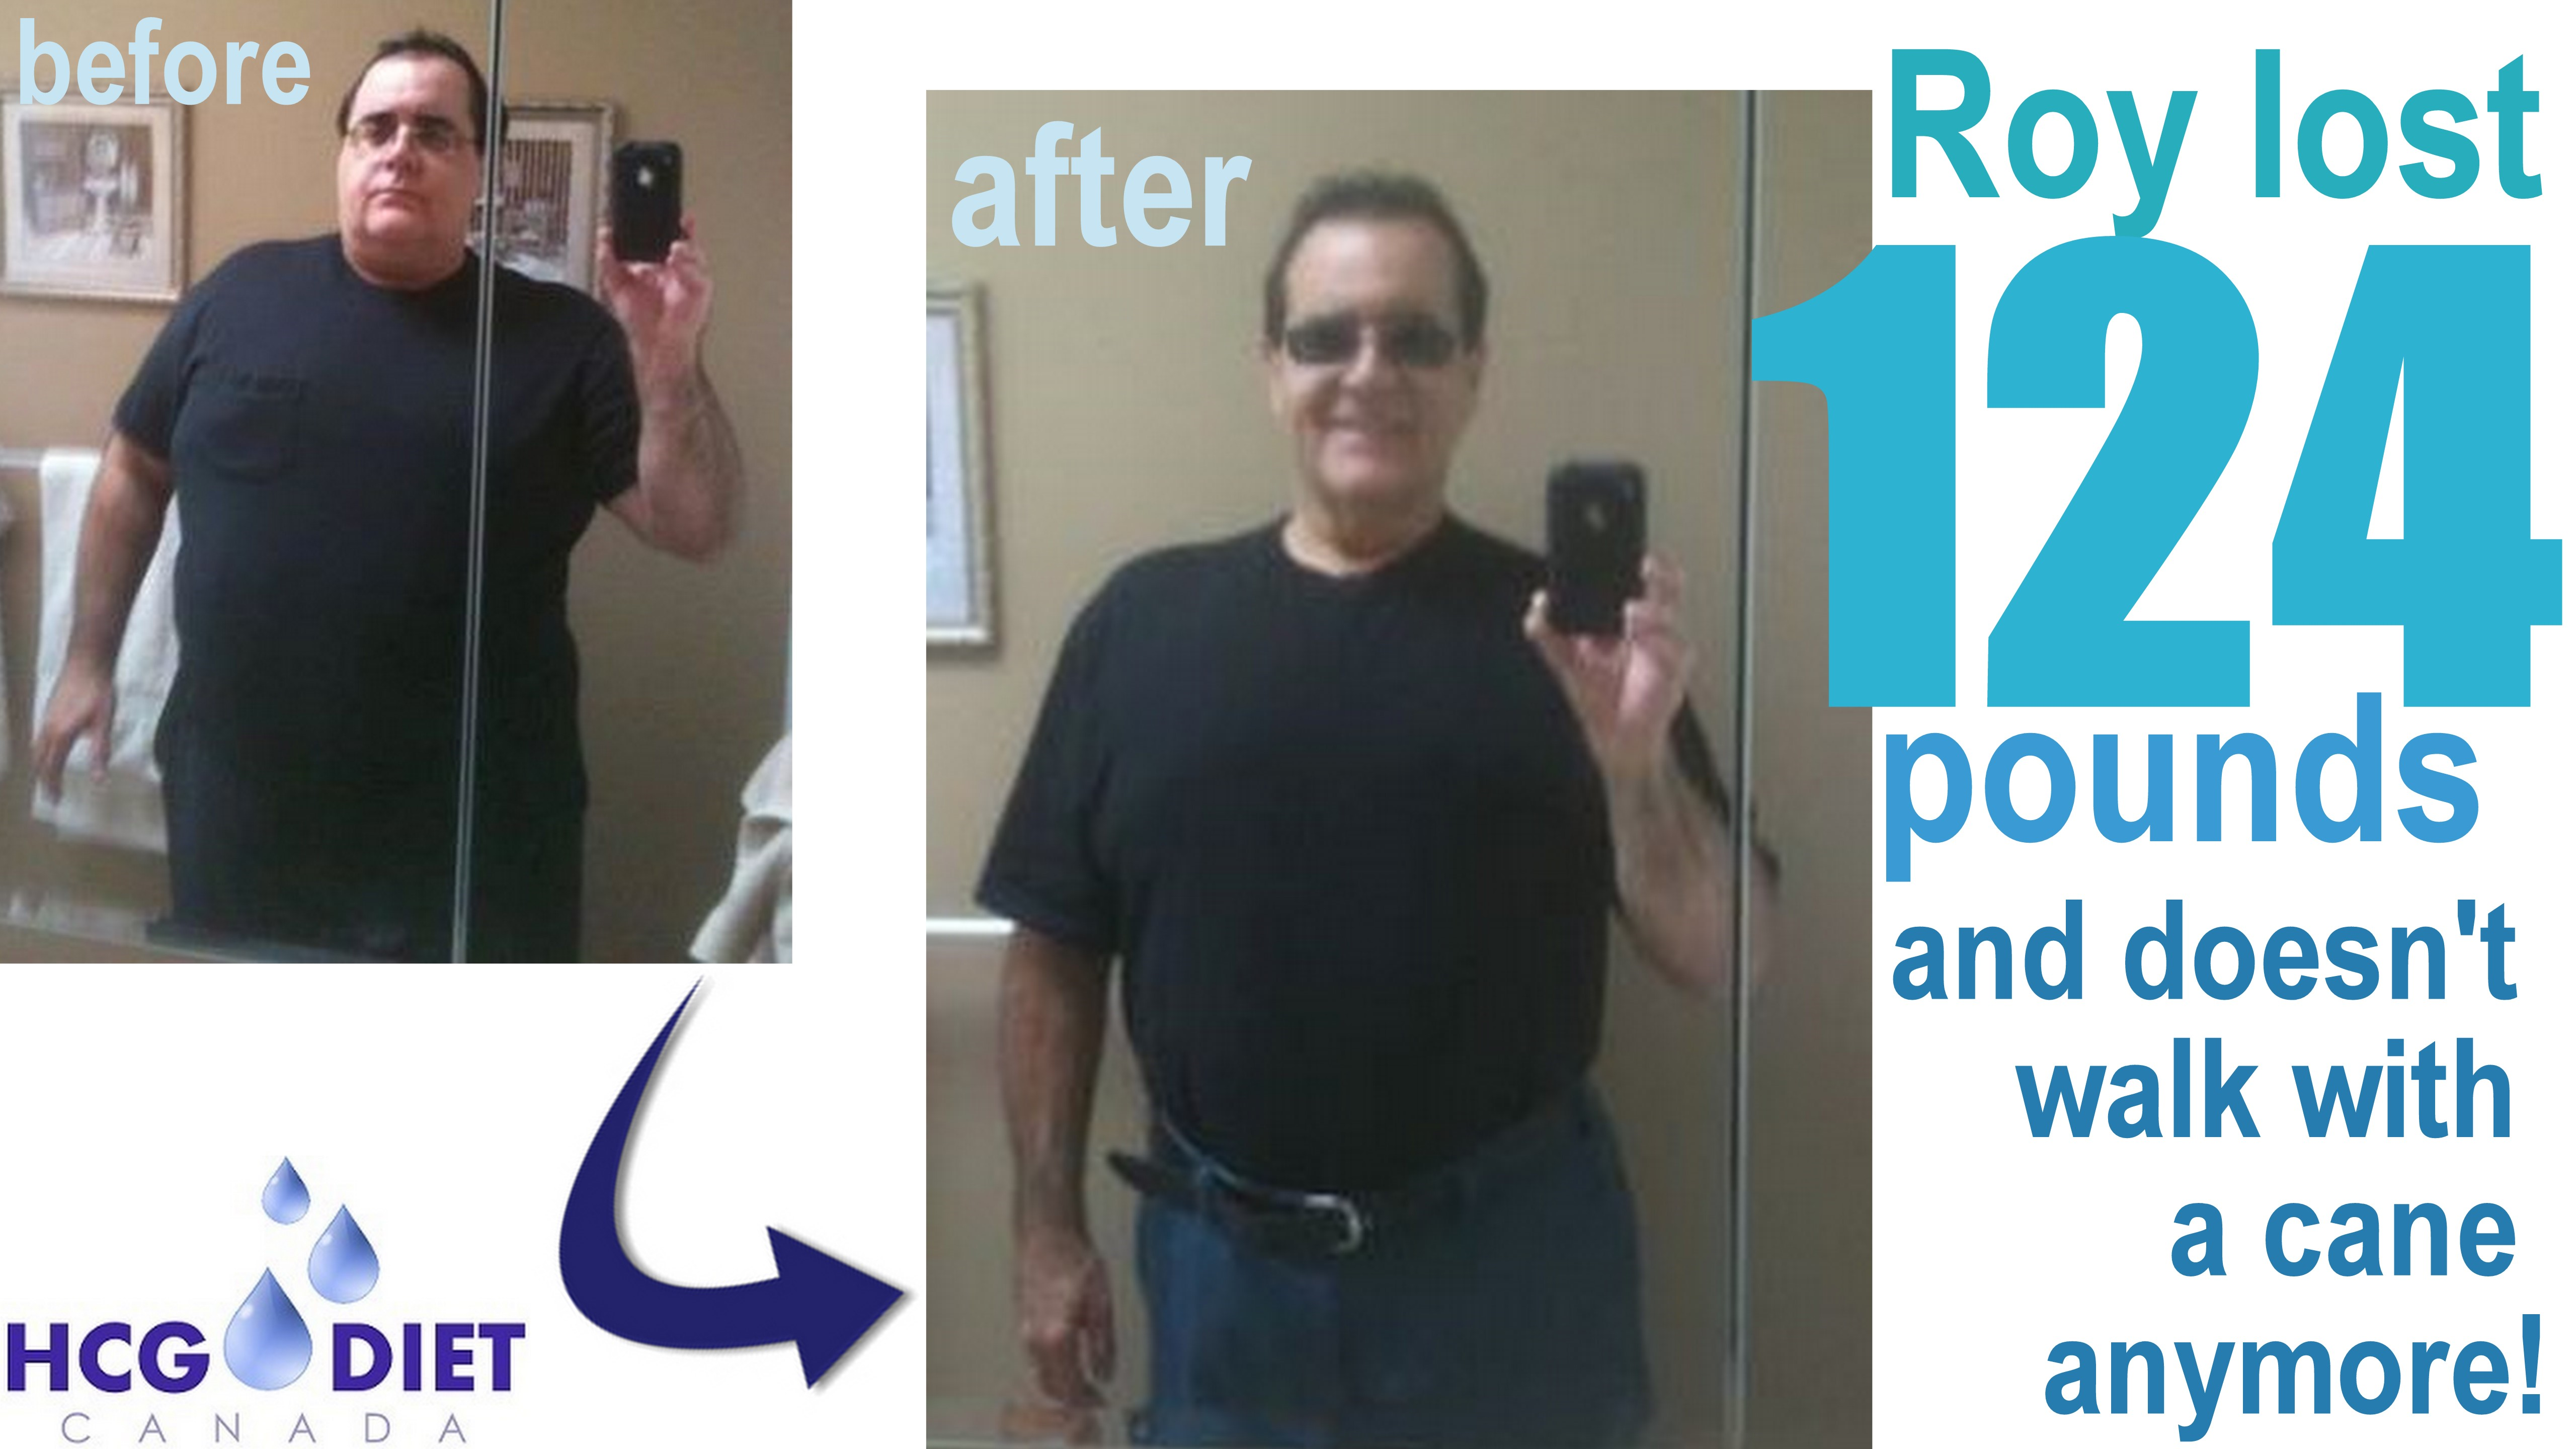 real hcg diet Canada 9